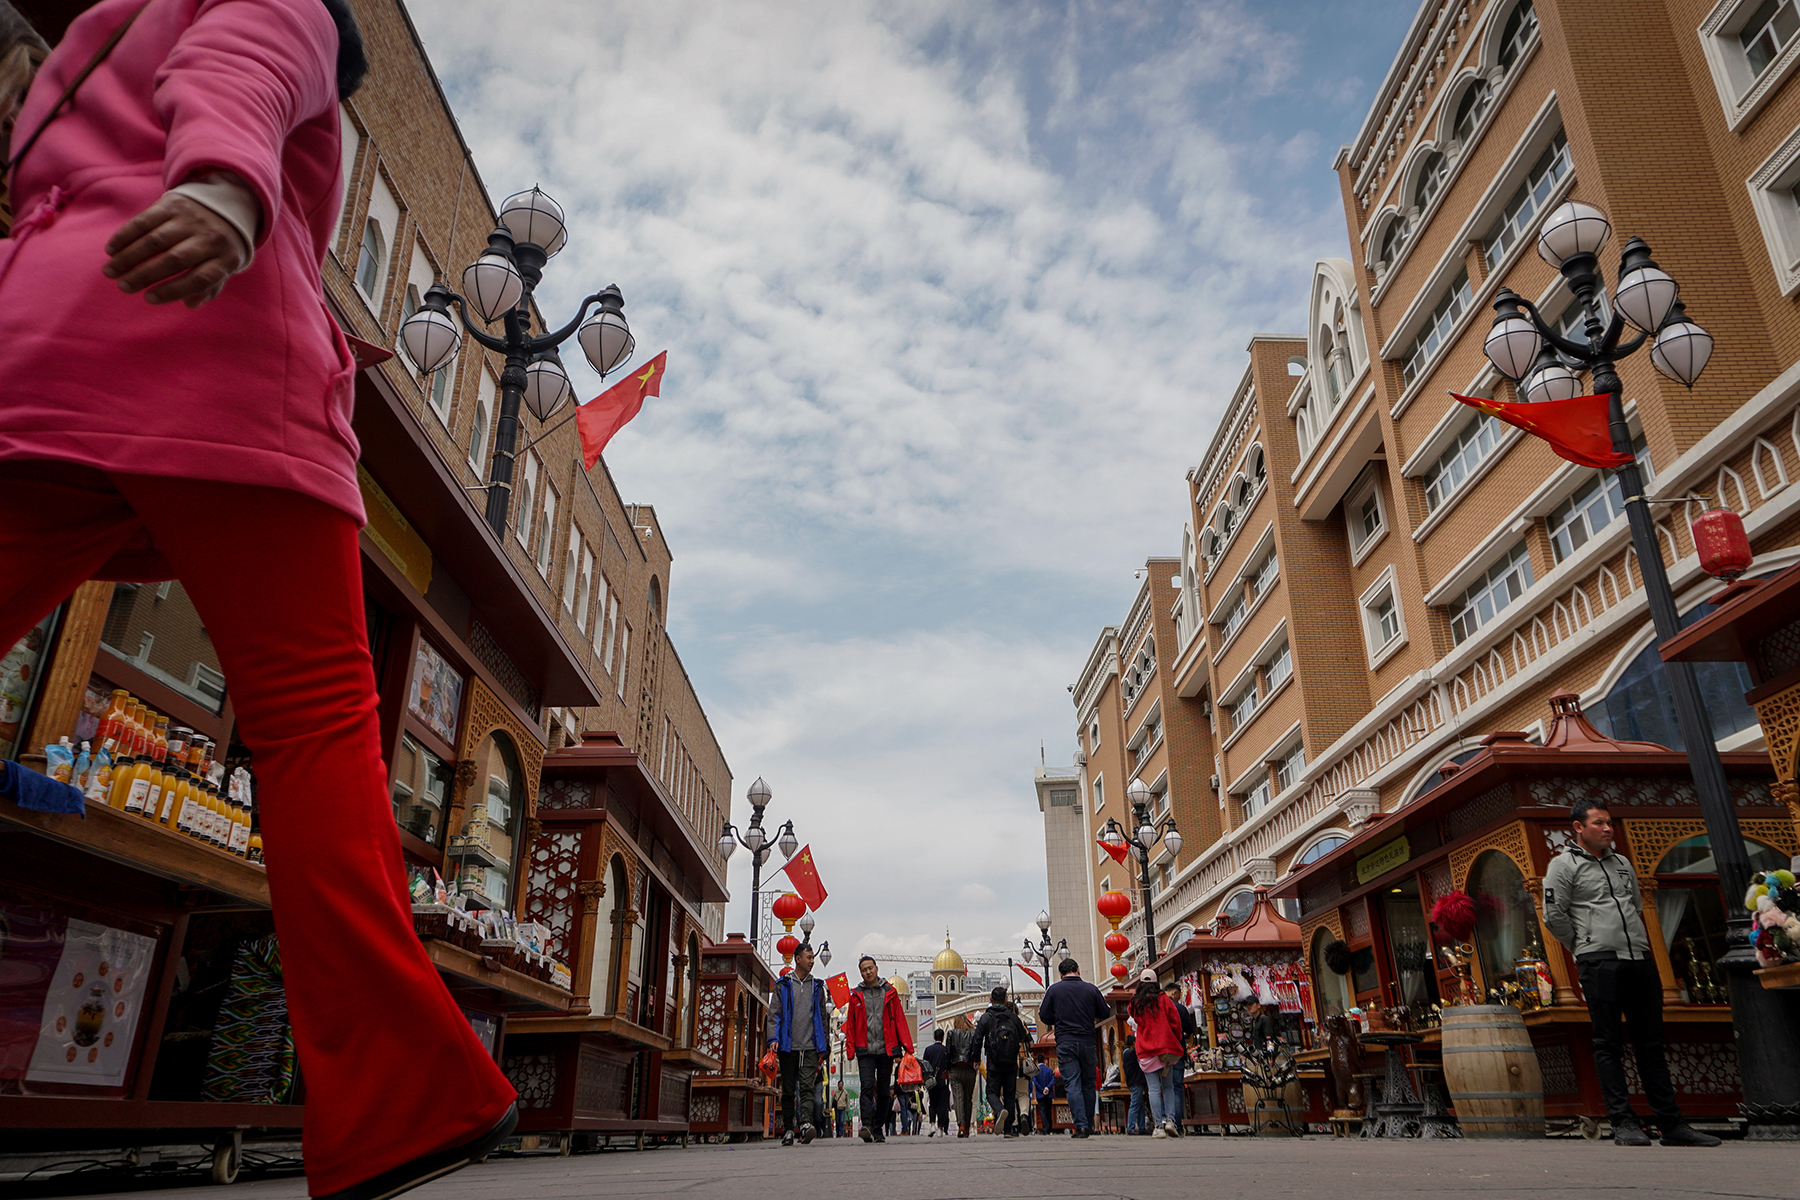 Outside the Xinjiang International Grand Bazaar in the capital of Urumqi, licensed vendors sell rugs, jewelry, and traditional trinkets from neat, allocated stalls on May 6. Chinese flags and a patriotic atmosphere prevail.